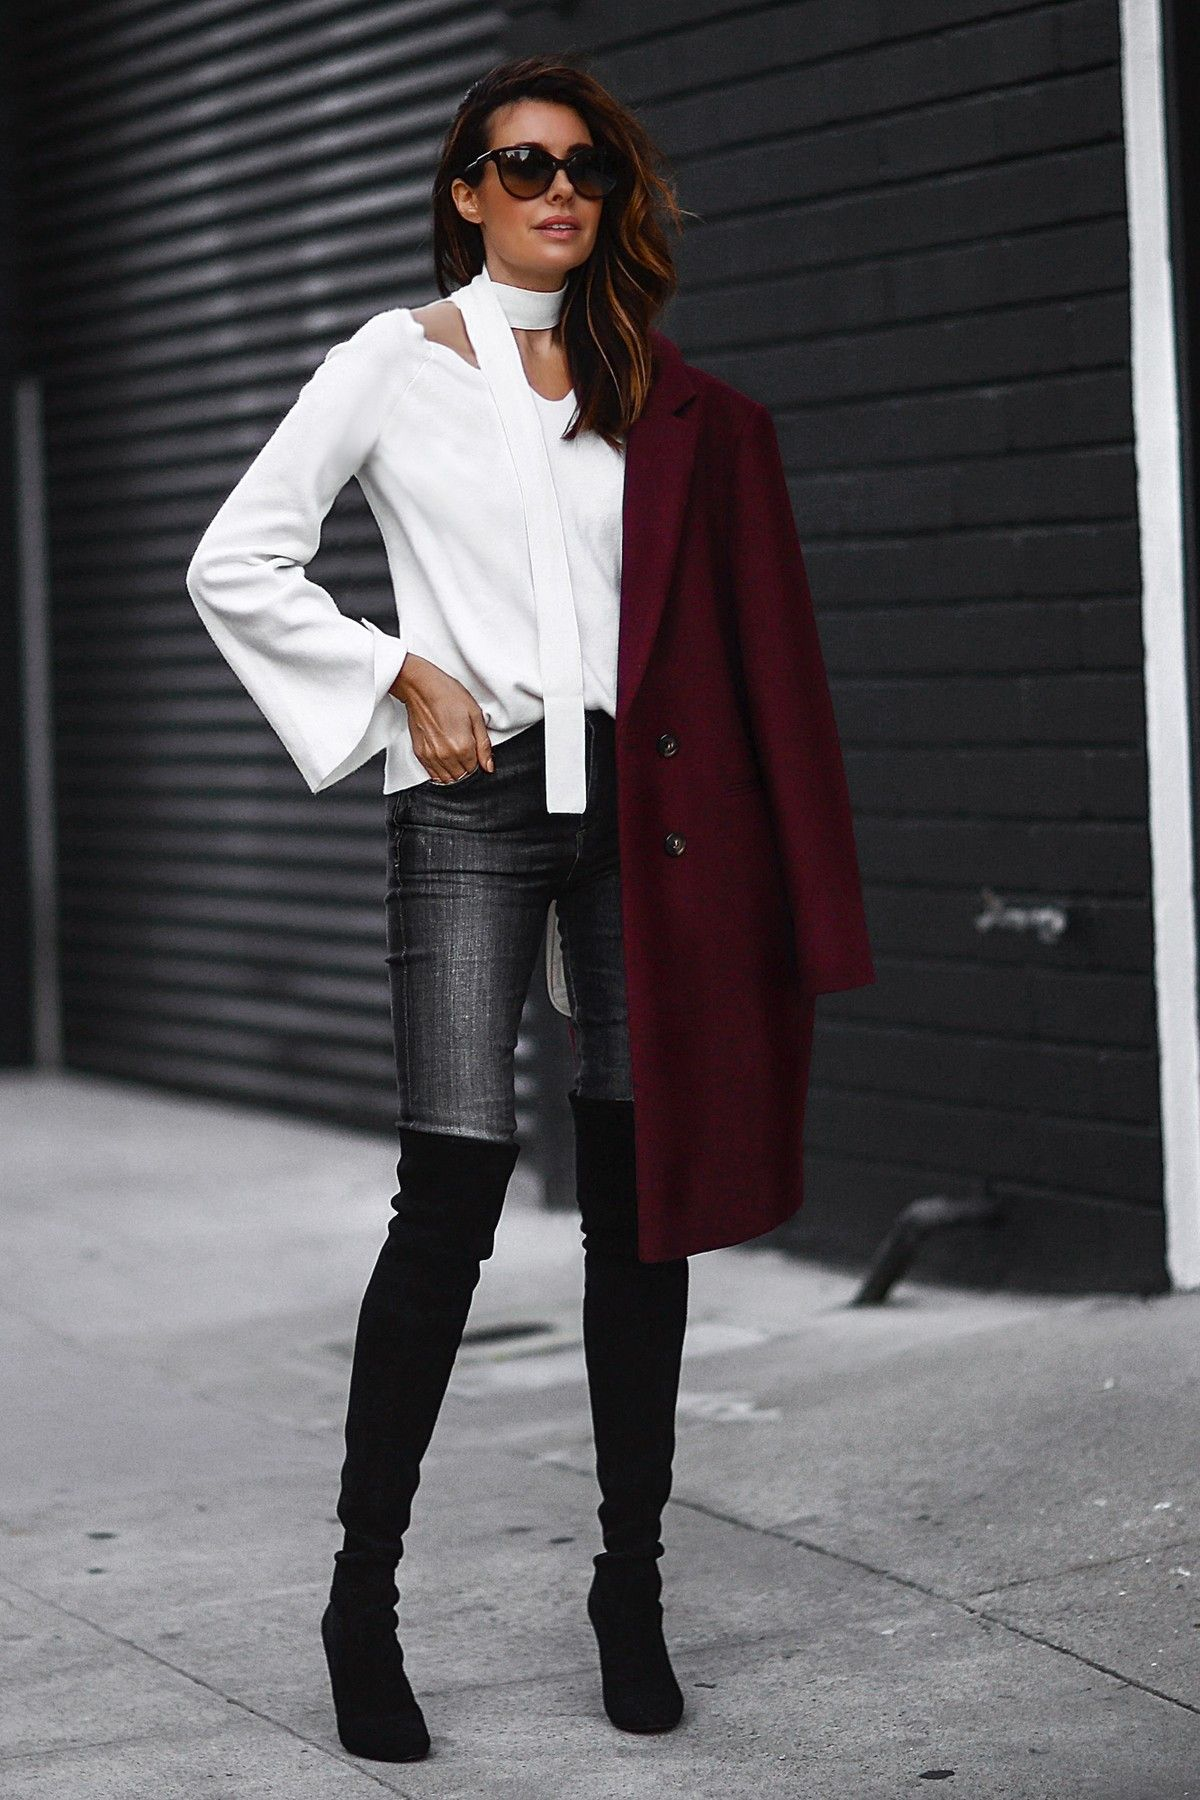 Sweater Weather: Skinny Scarf + Bell Sleeves | FASHIONED